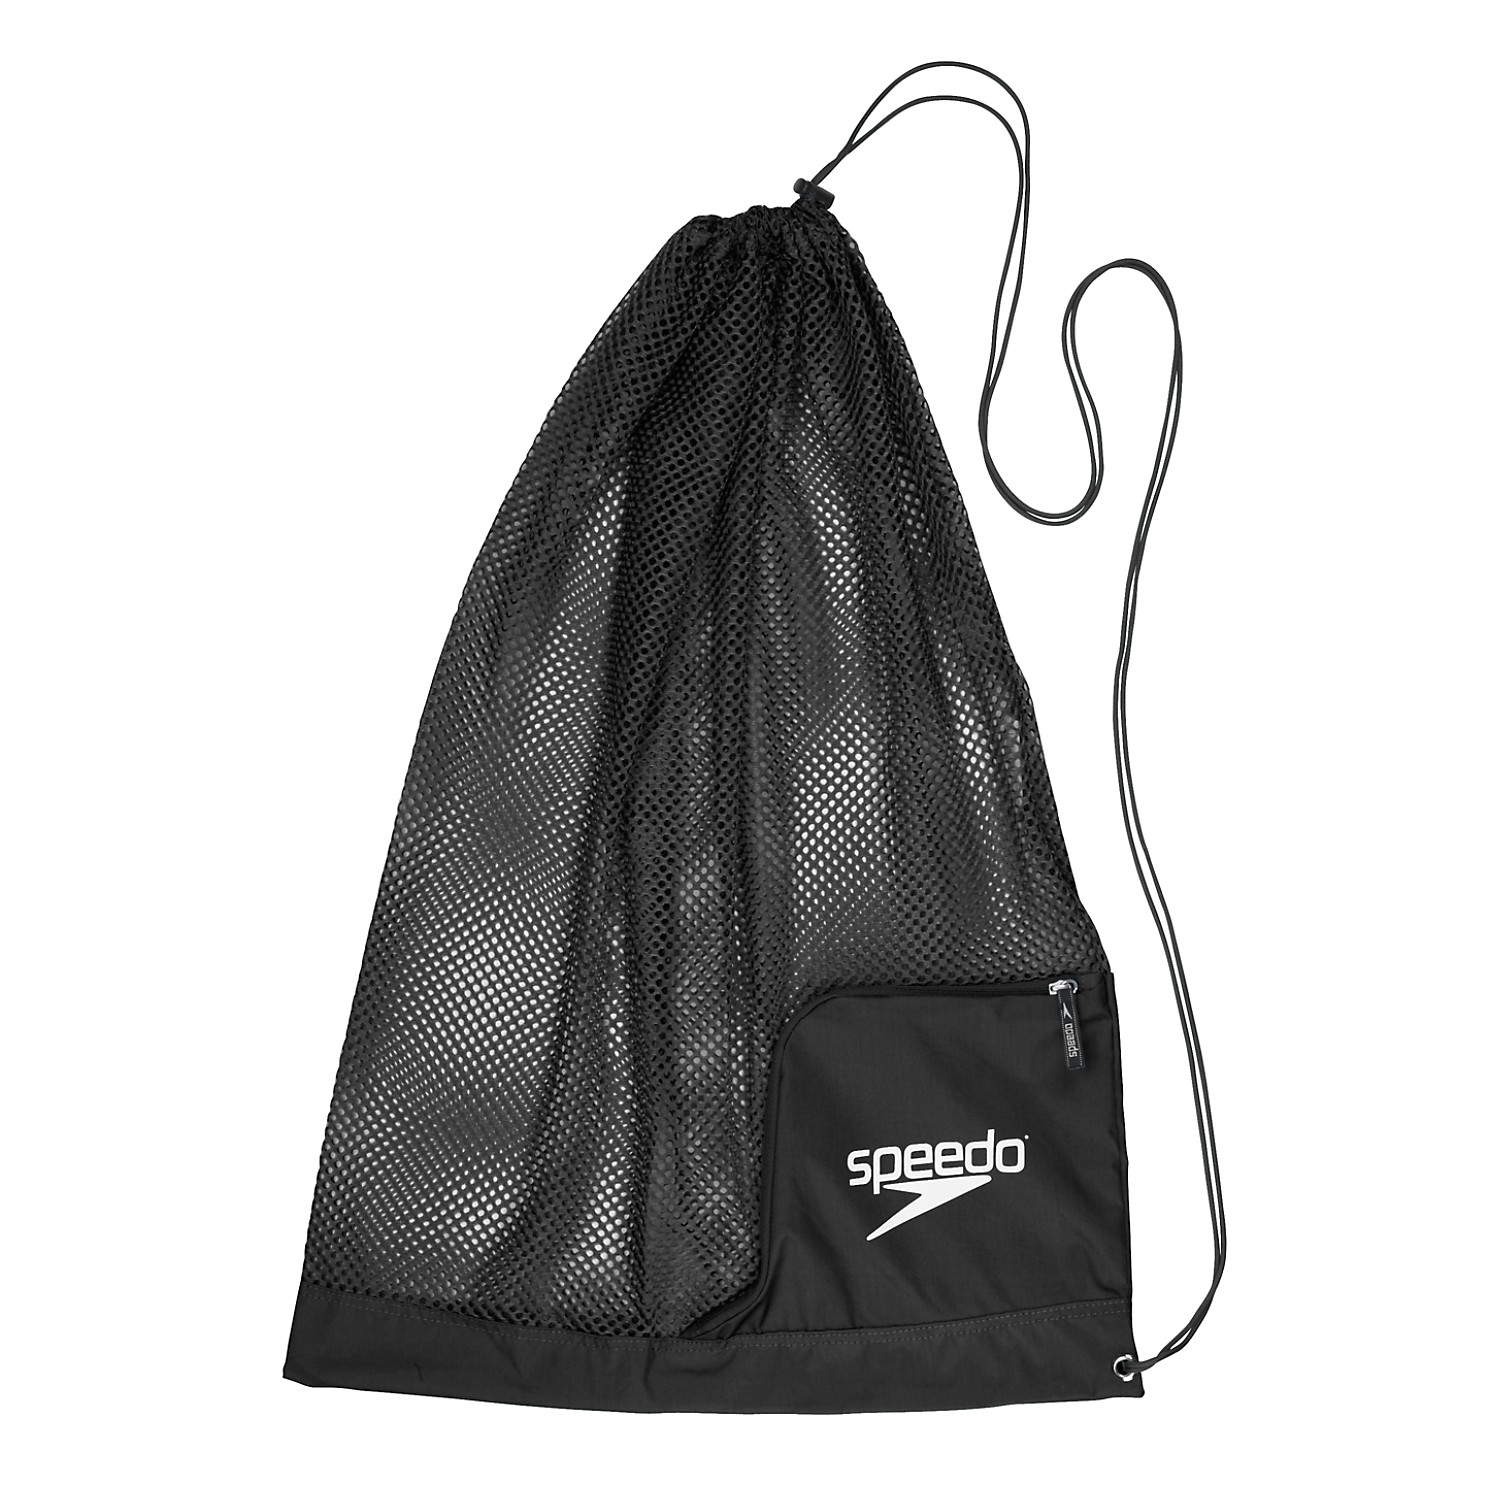 Speedo Ventilator Mesh Equipment Bag by Speedo